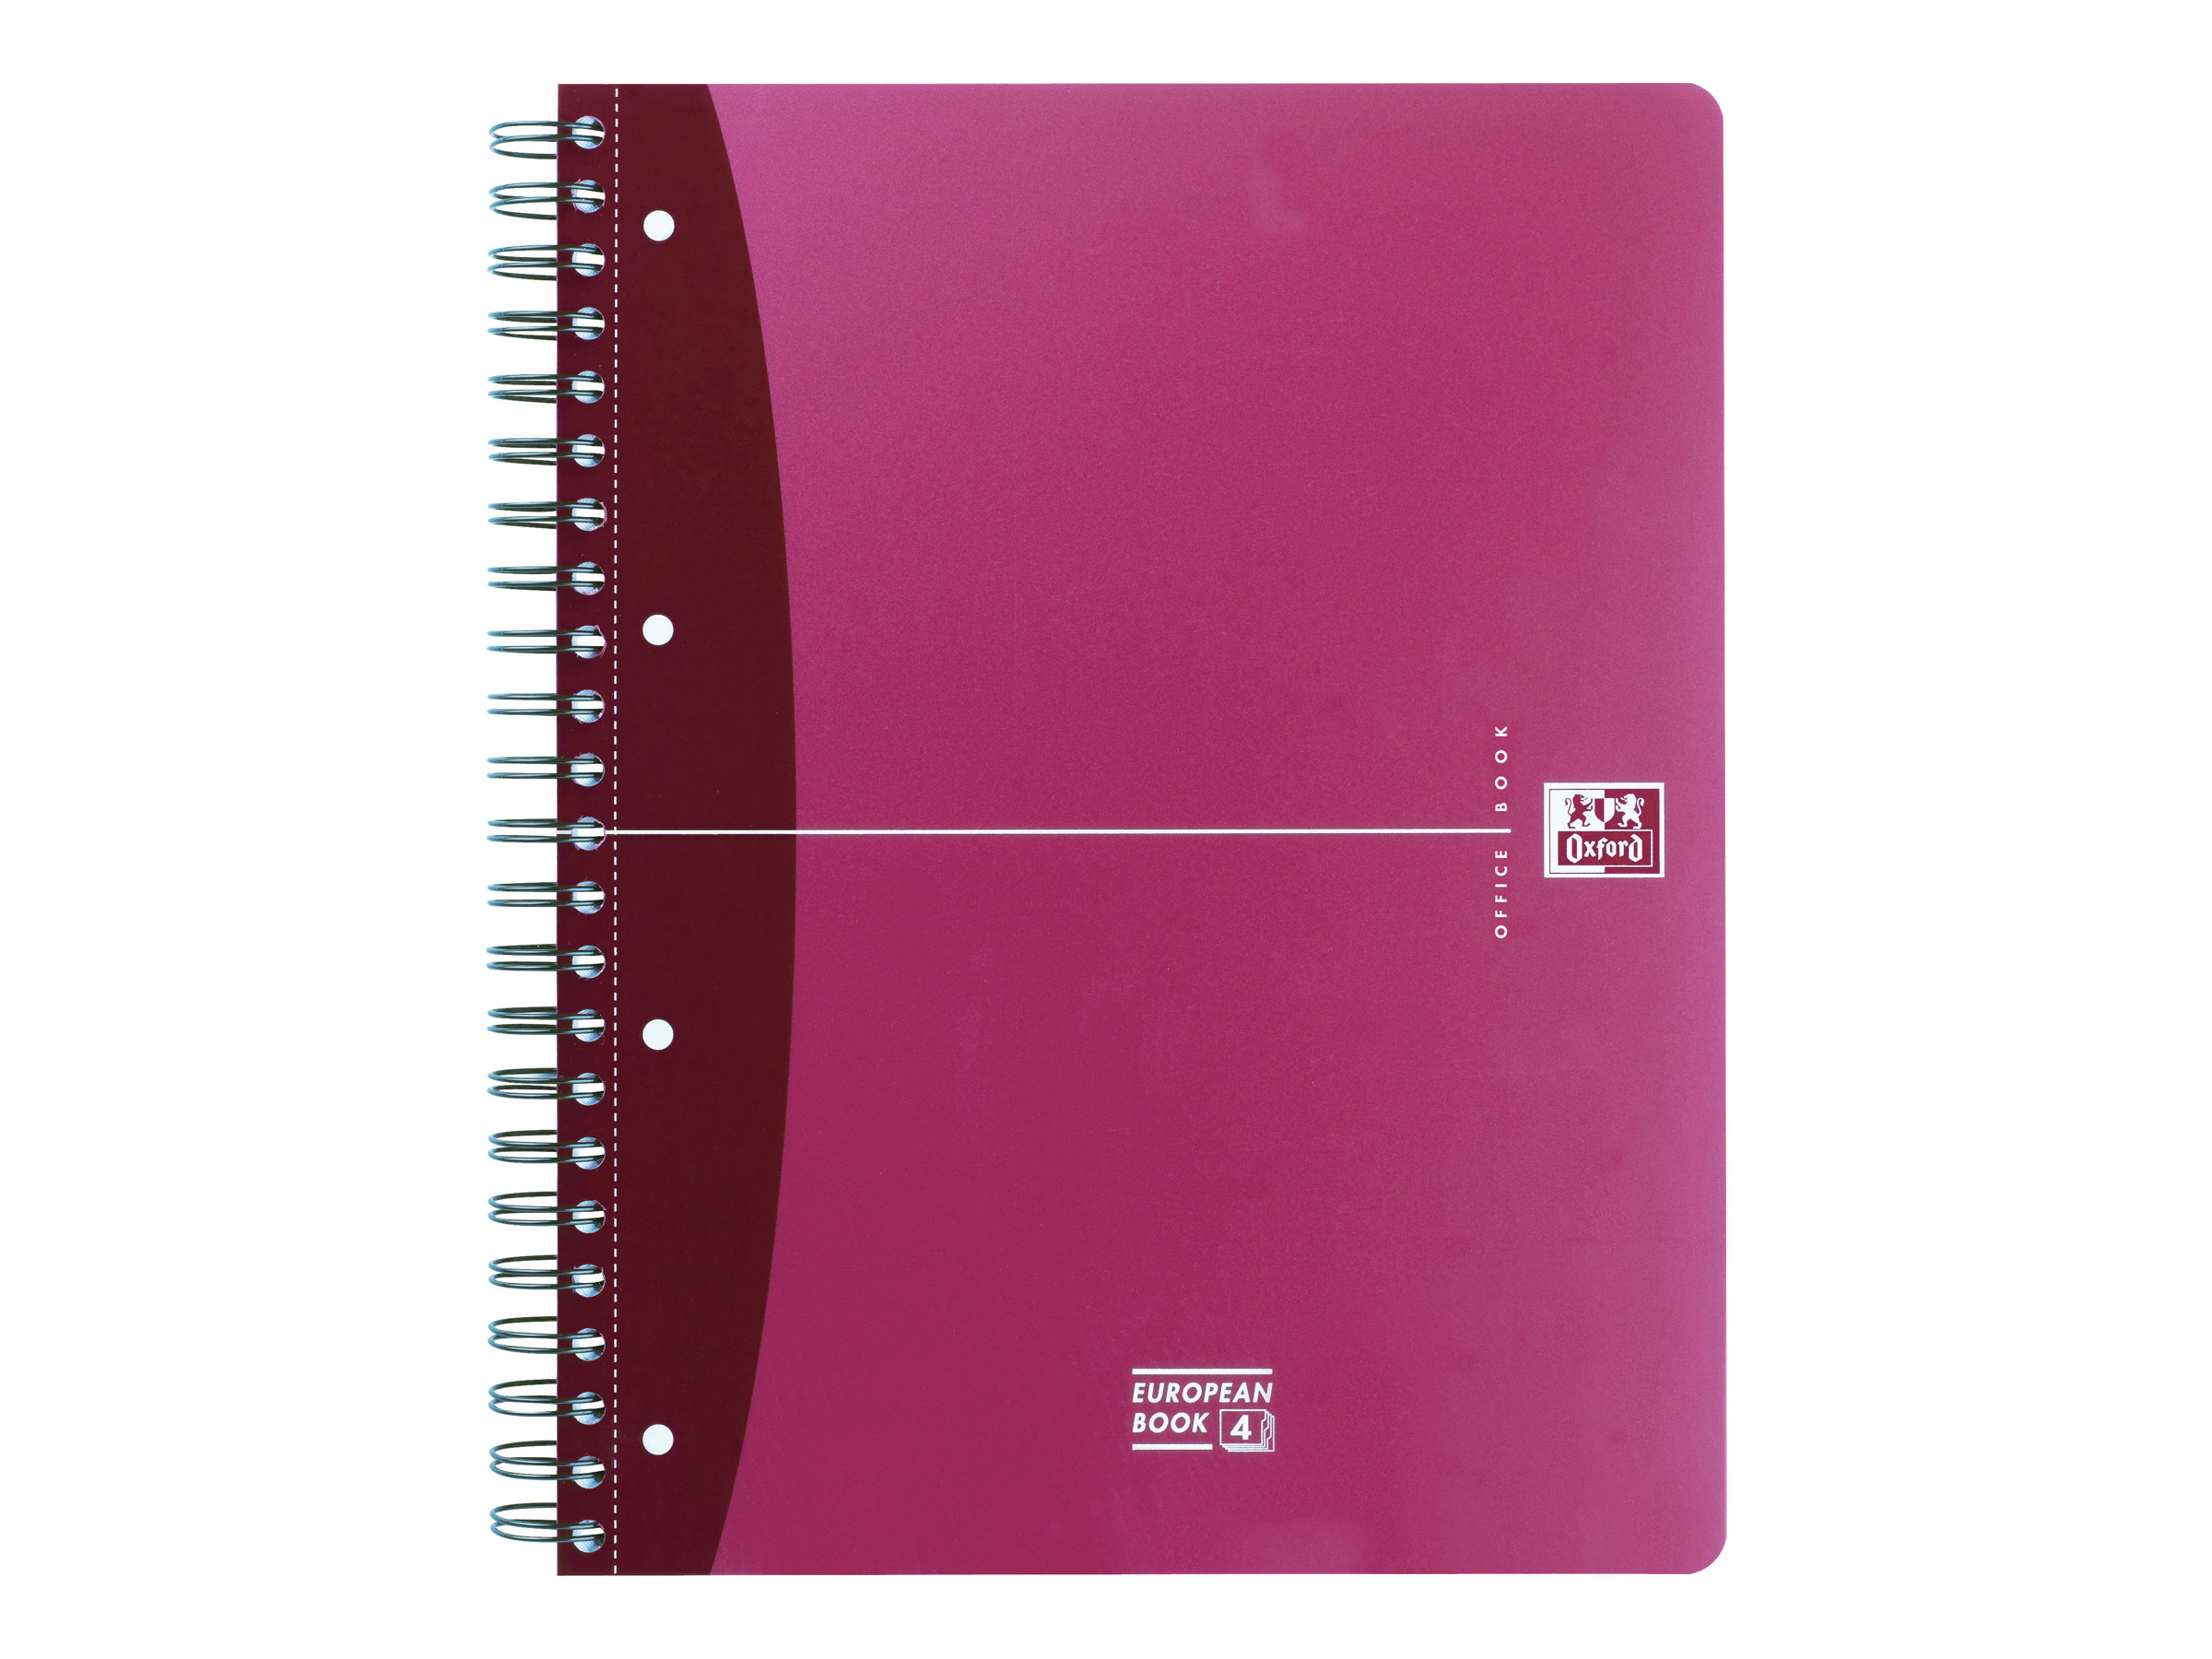 Oxford office europeanbook a4 cahier 240 pages sey s grands carreaux cahiers - Cahier oxford office book ...